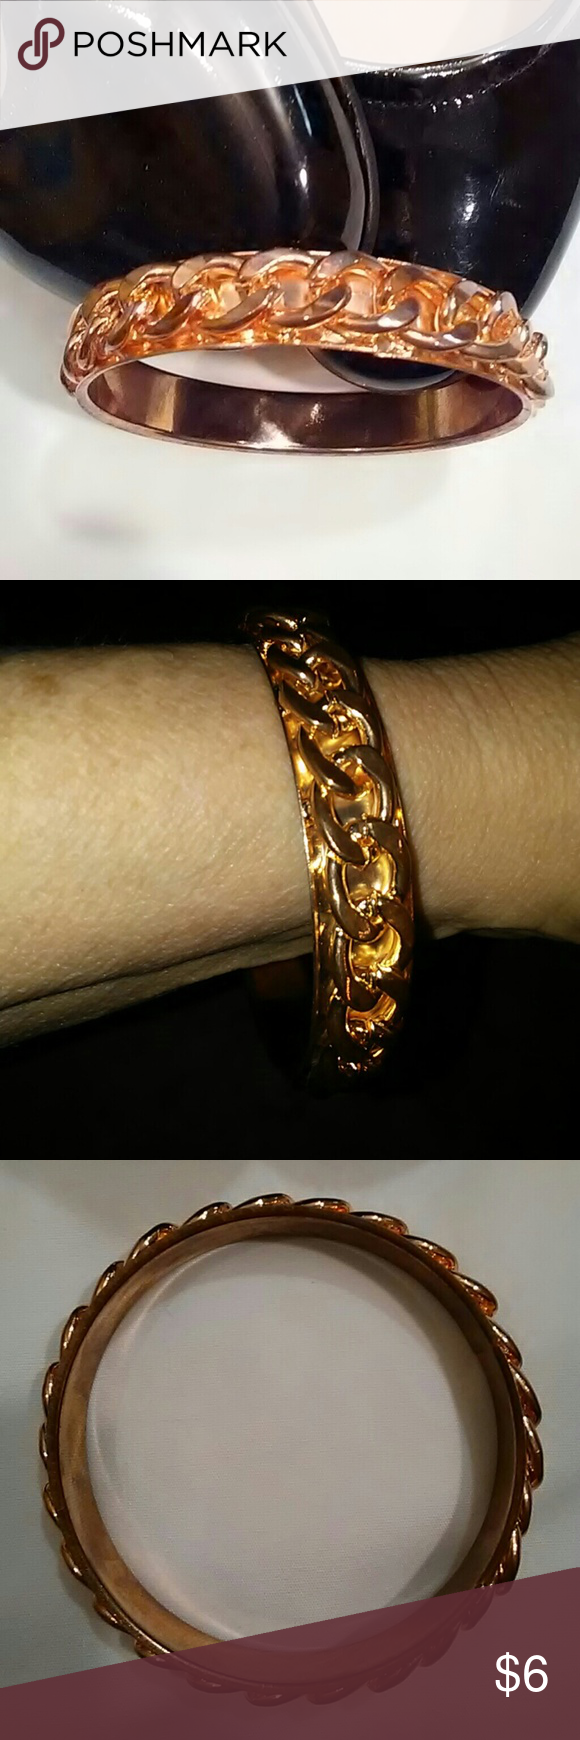 Torrid Brand Plus Size Bangle Bracelet Rose Gold Colored Metal Nickel Free With Chain Detail Around The Outside